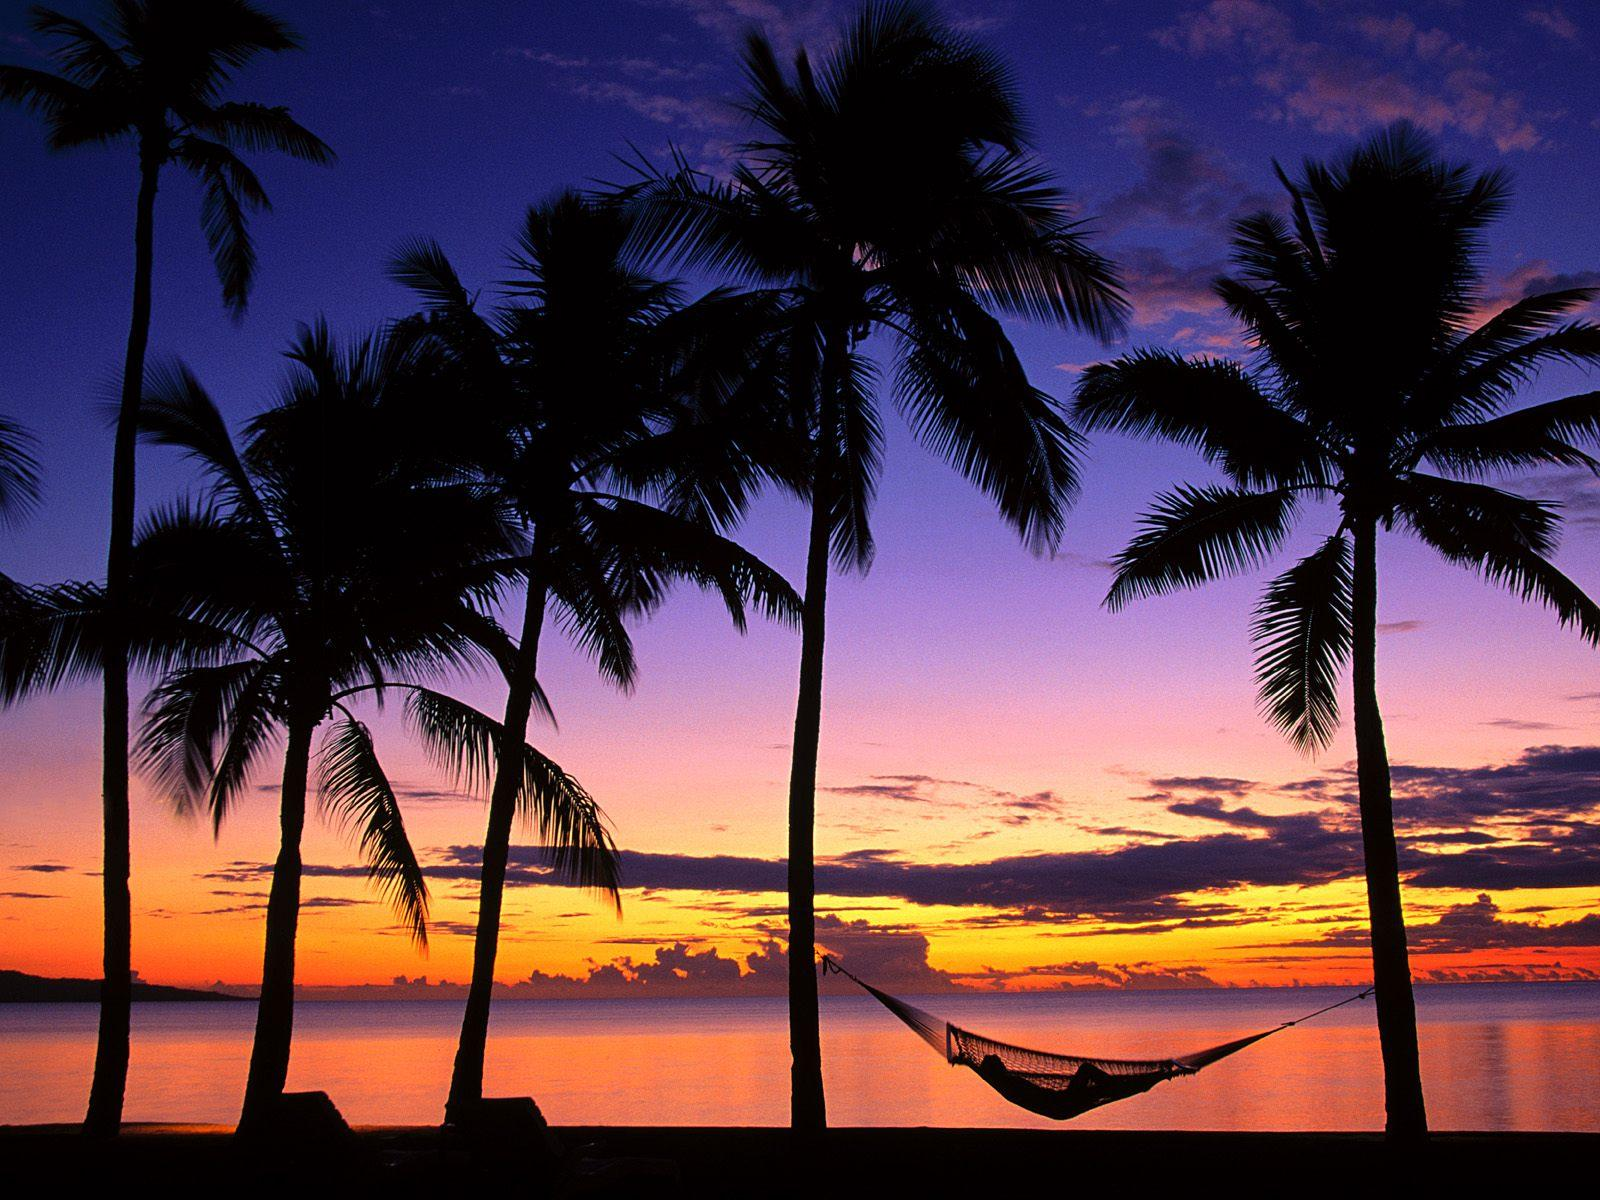 Beach Sunsets With Palm Trees 35888 Hd Wallpapers